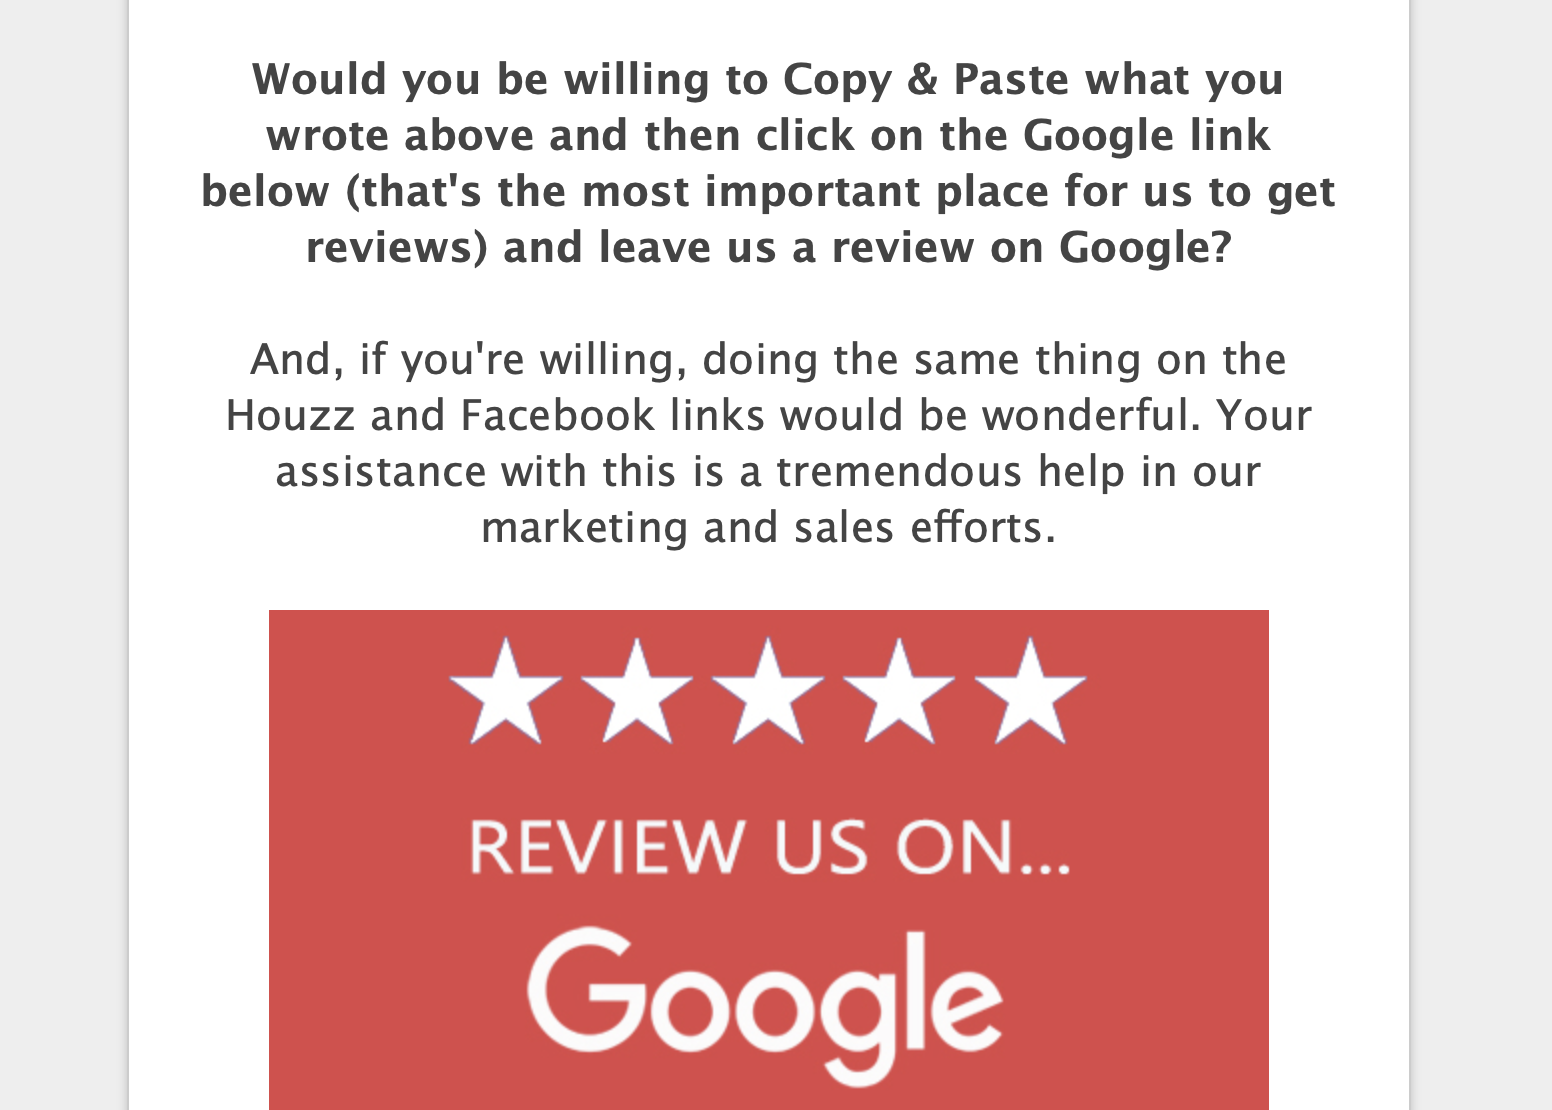 Survey Produces Google Reviews - Remodel Your Marketing